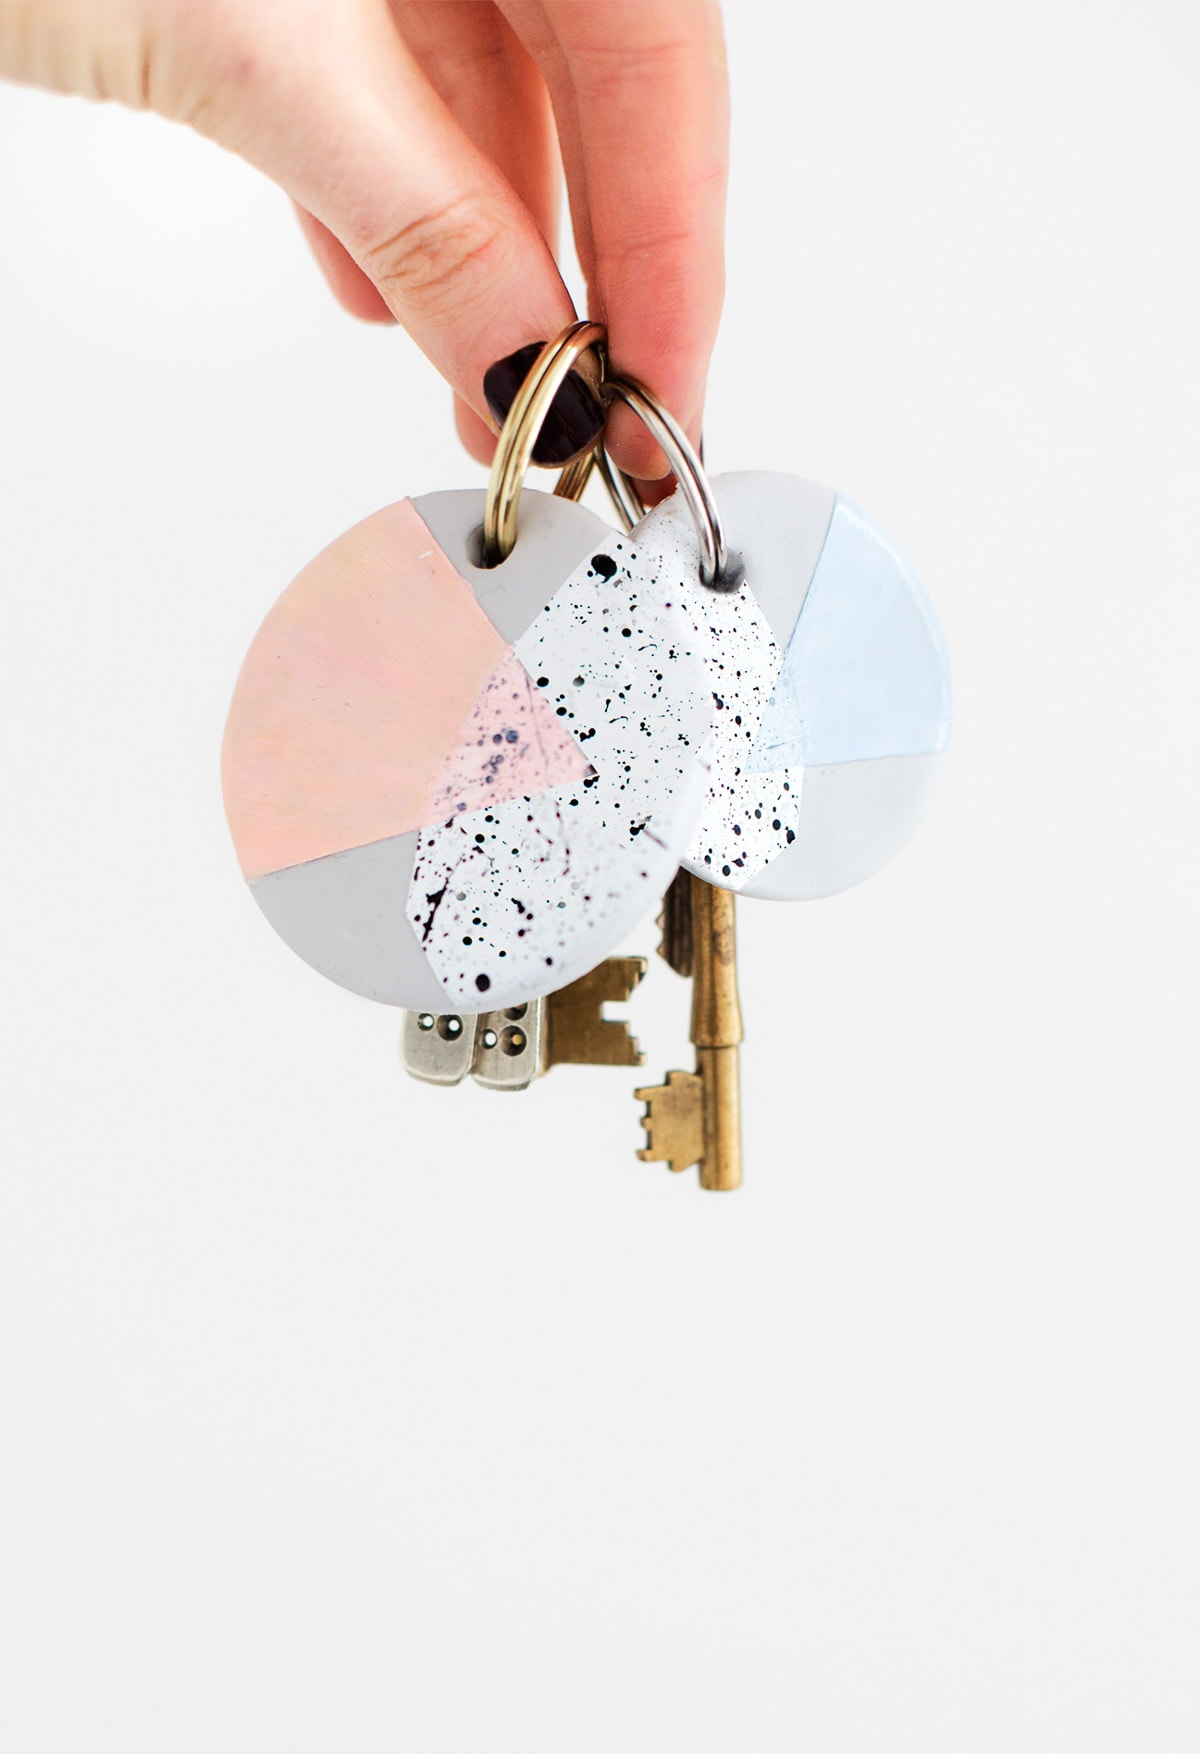 A DIY speckled polymer clay keychain to give your keys a colorful makeover! - sugar and cloth - houston blogger #accessories #polymerclay #diy #keys #keyring #keychain #speckled #gift